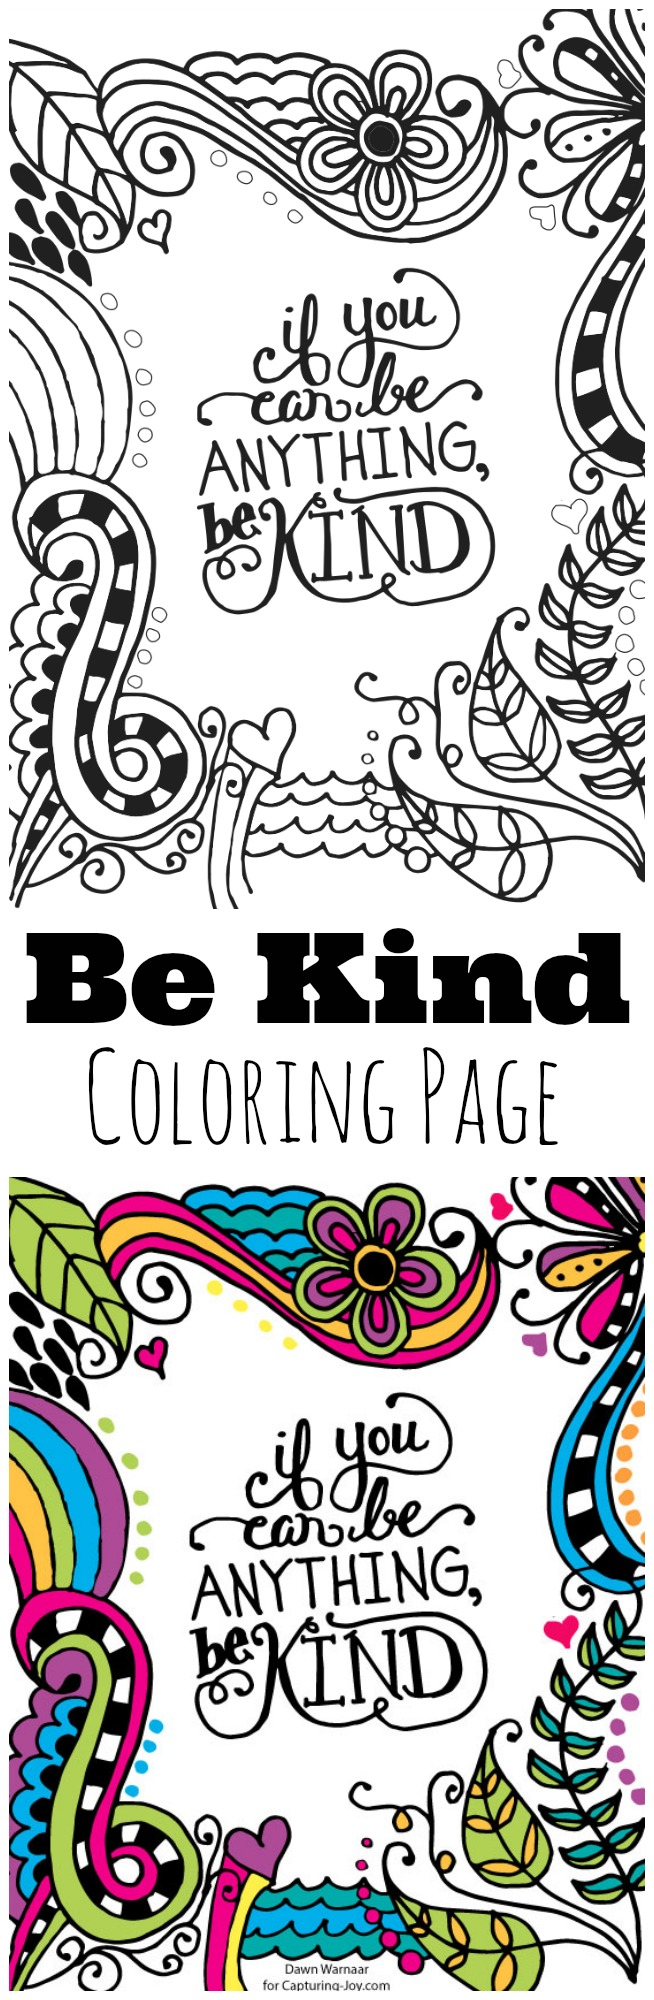 Be-Kind-Kids-Coloring-Page